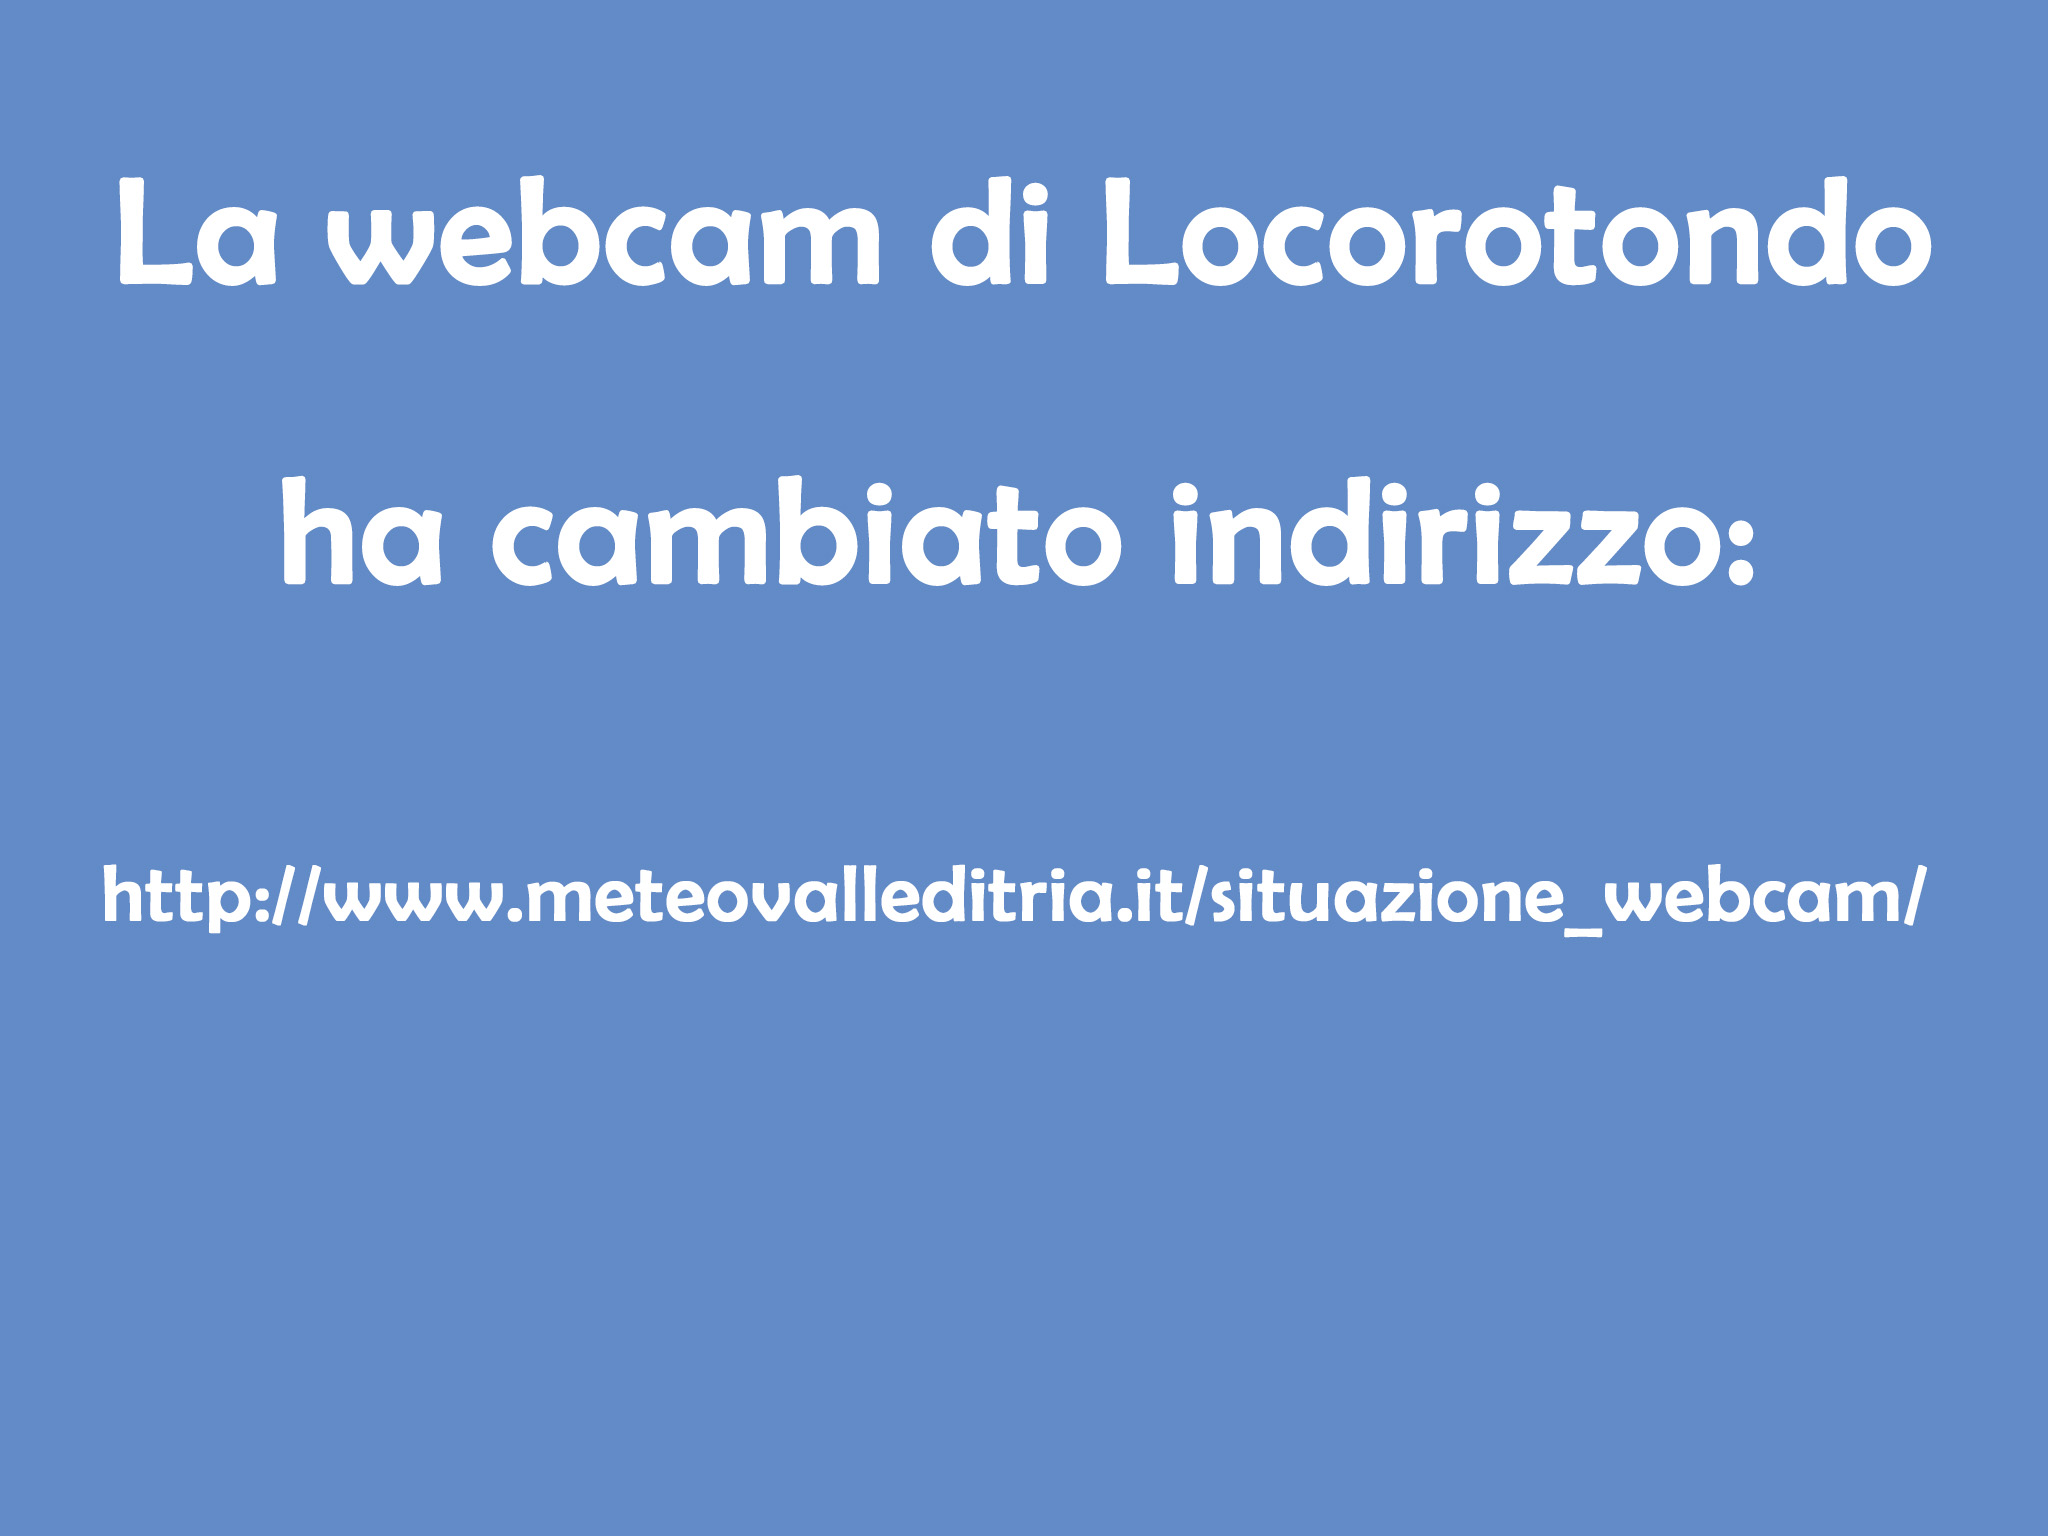 Webcam a Locorotondo (BA)